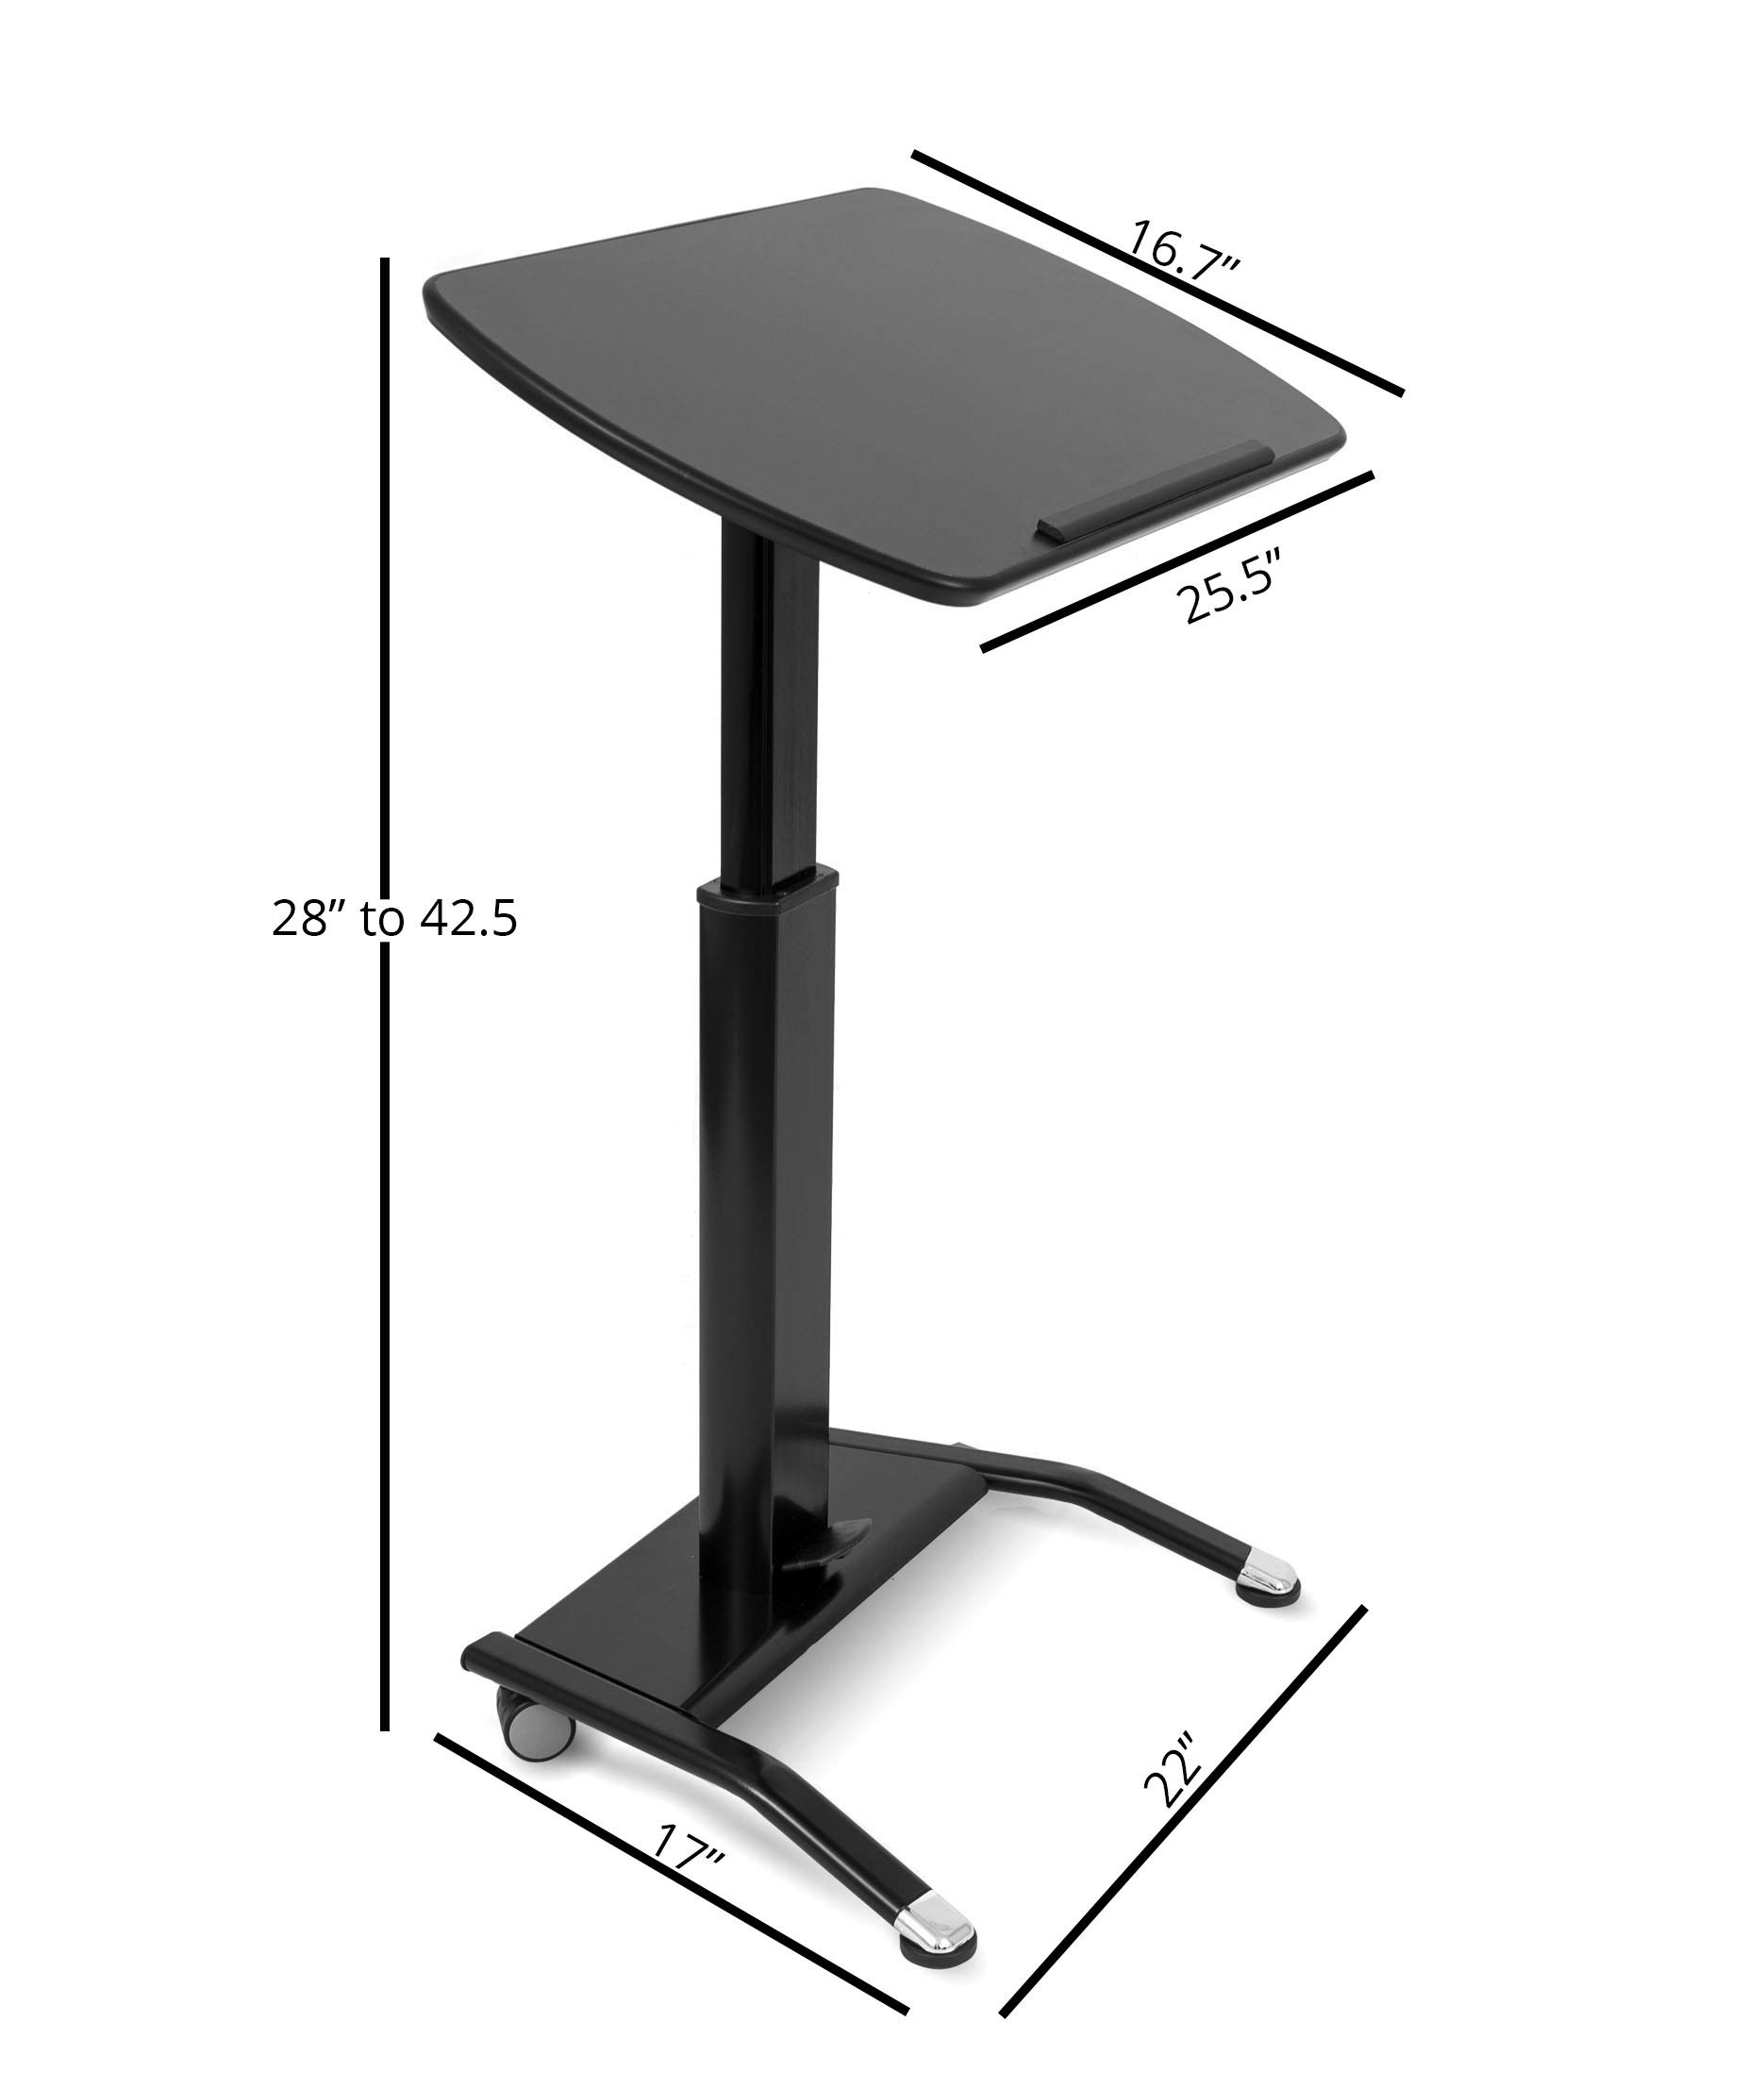 Pneumatic Adjustable-Height Lectern (White) by Stand Up Desk Store (Image #7)